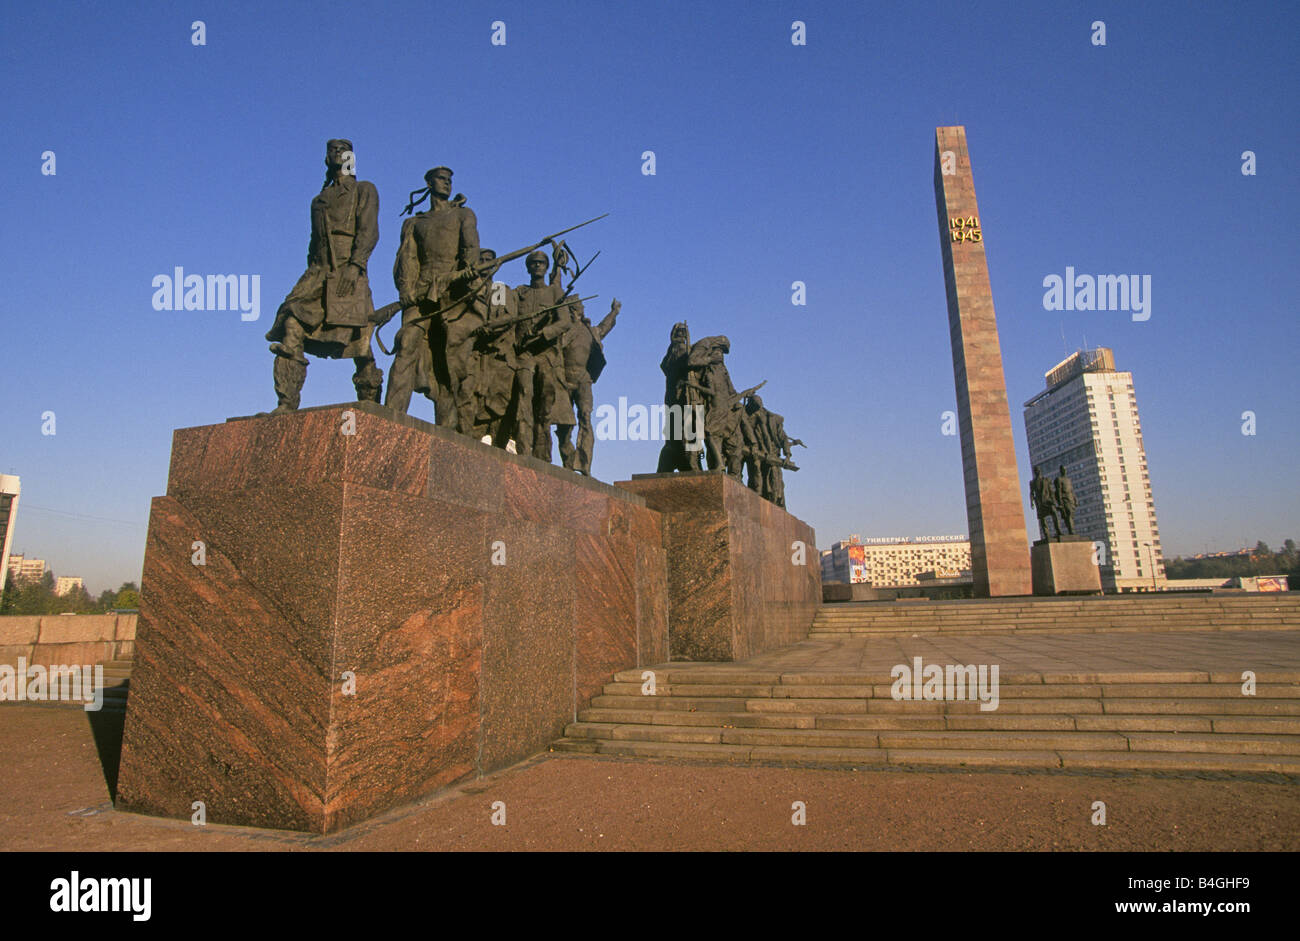 Monument to the St Petersburg War Dead, St. Petersburg, Russia. - Stock Image